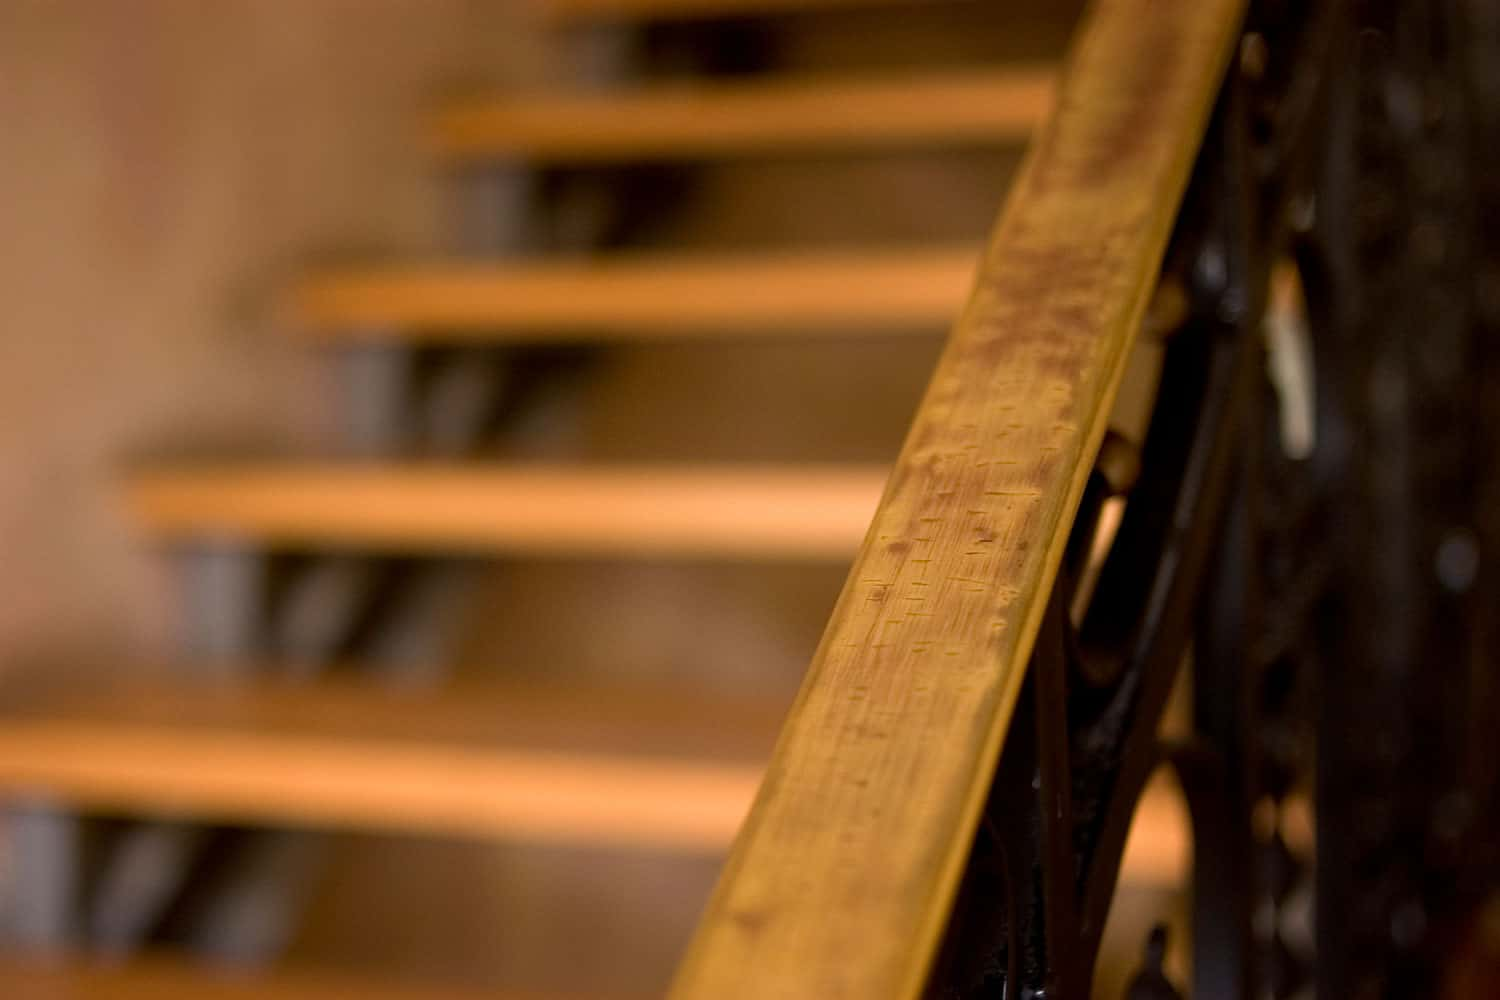 A wooden staircase with wooden railing